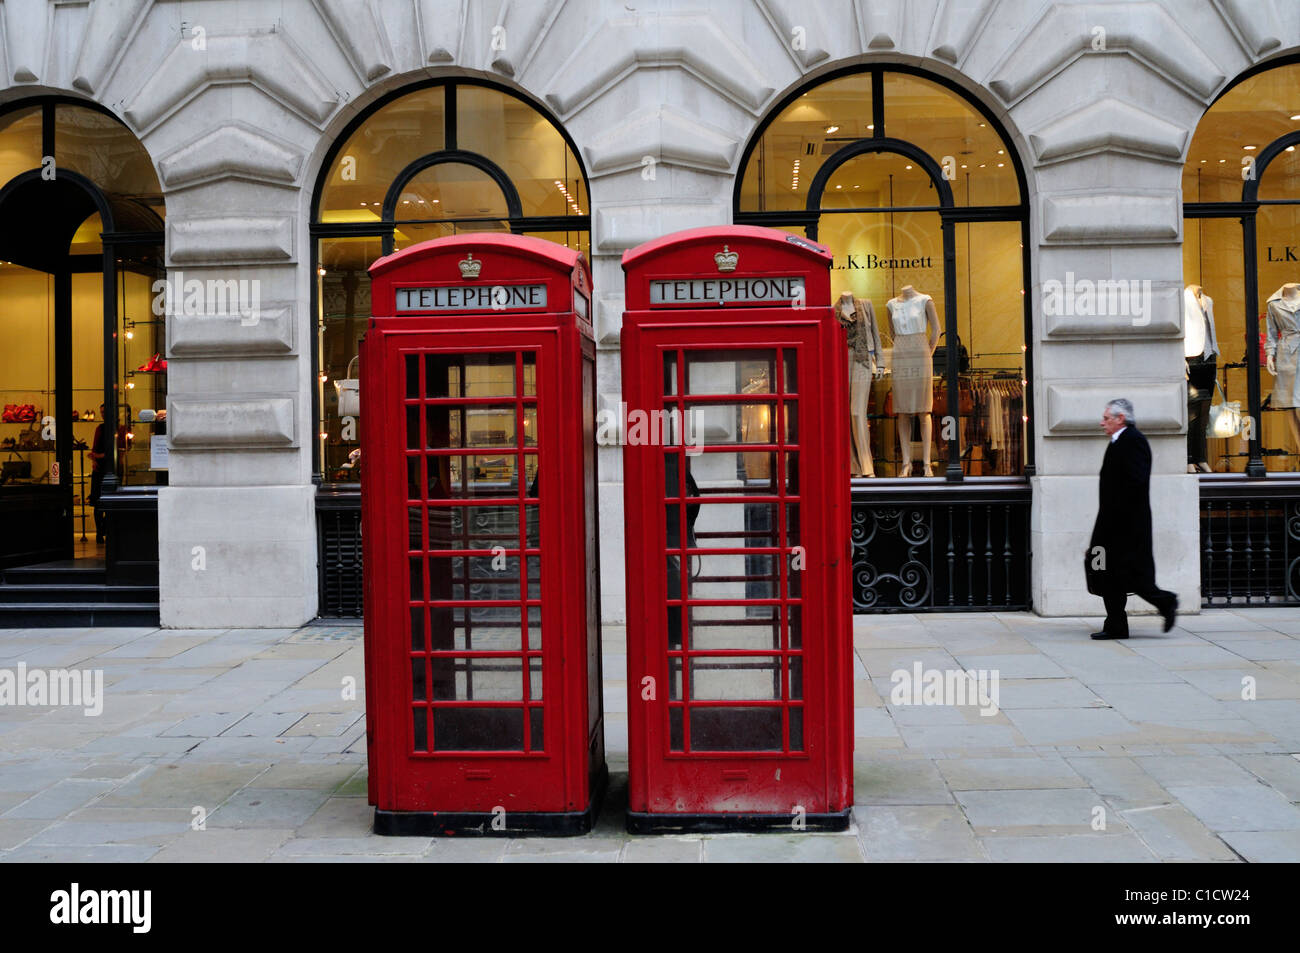 Red Telephone Boxes and L.K. Bennett Clothes Shop, Royal Exchange Buildings, London, England, UK - Stock Image